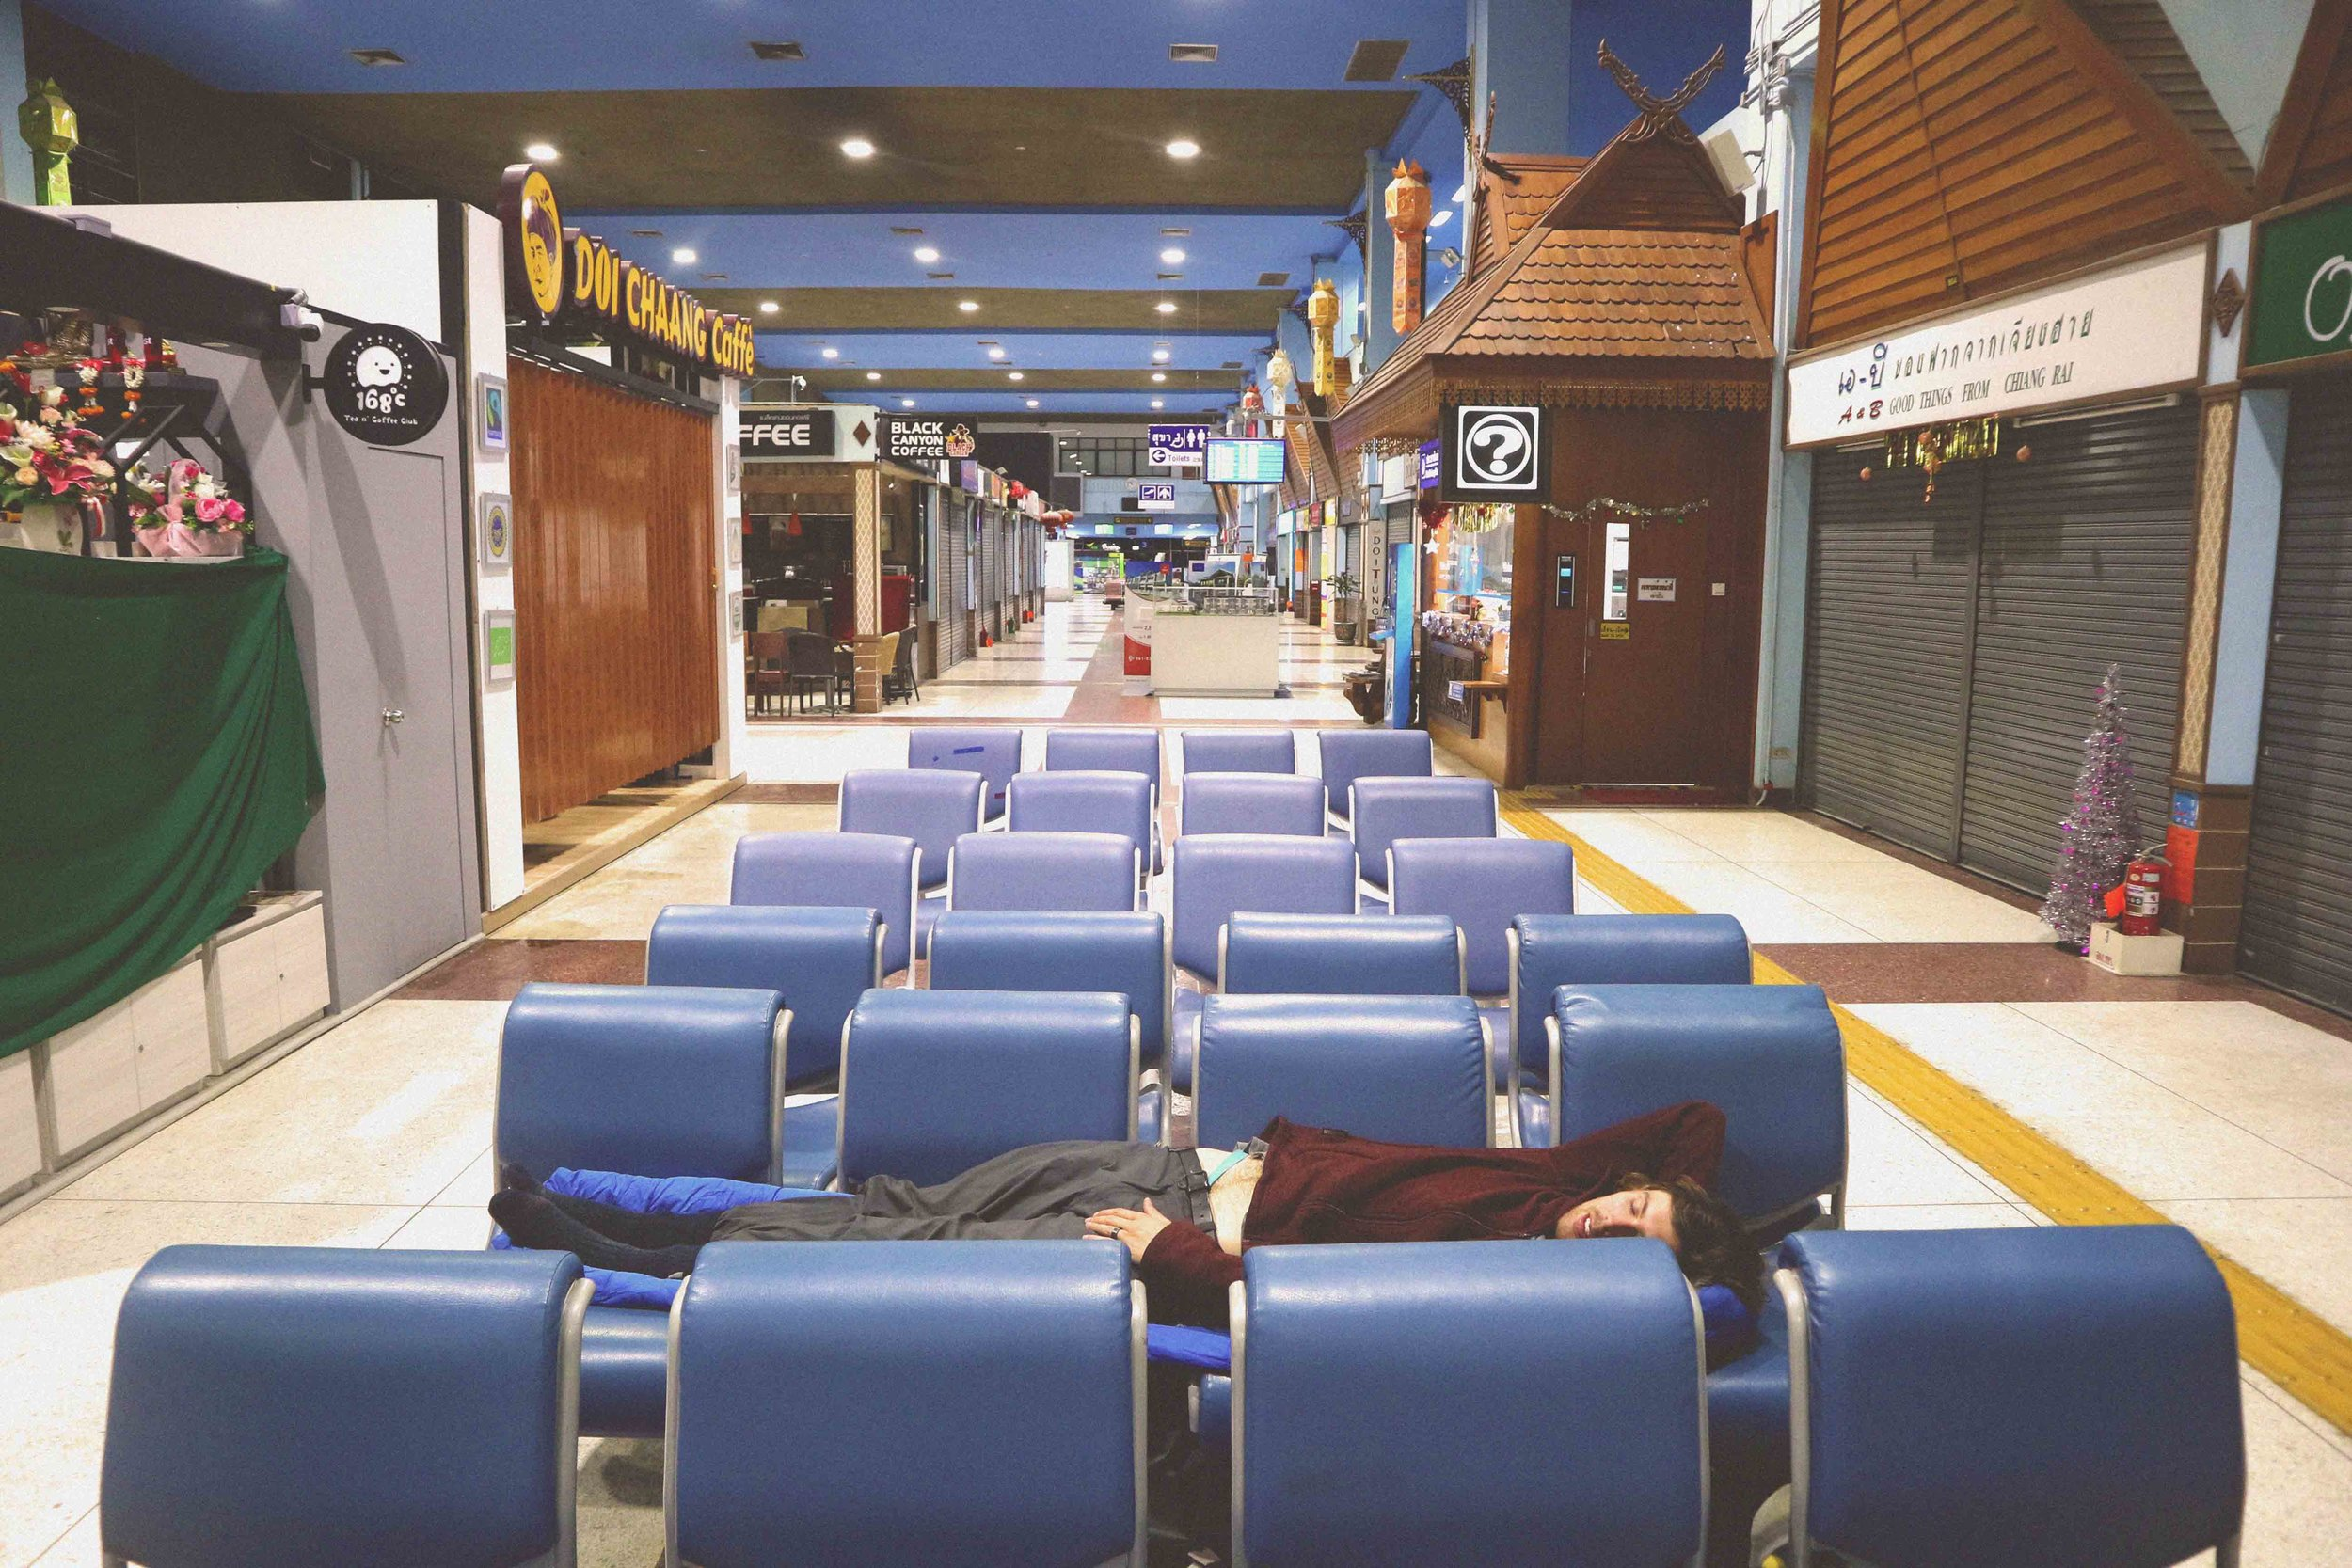 We had the airport to ourselves